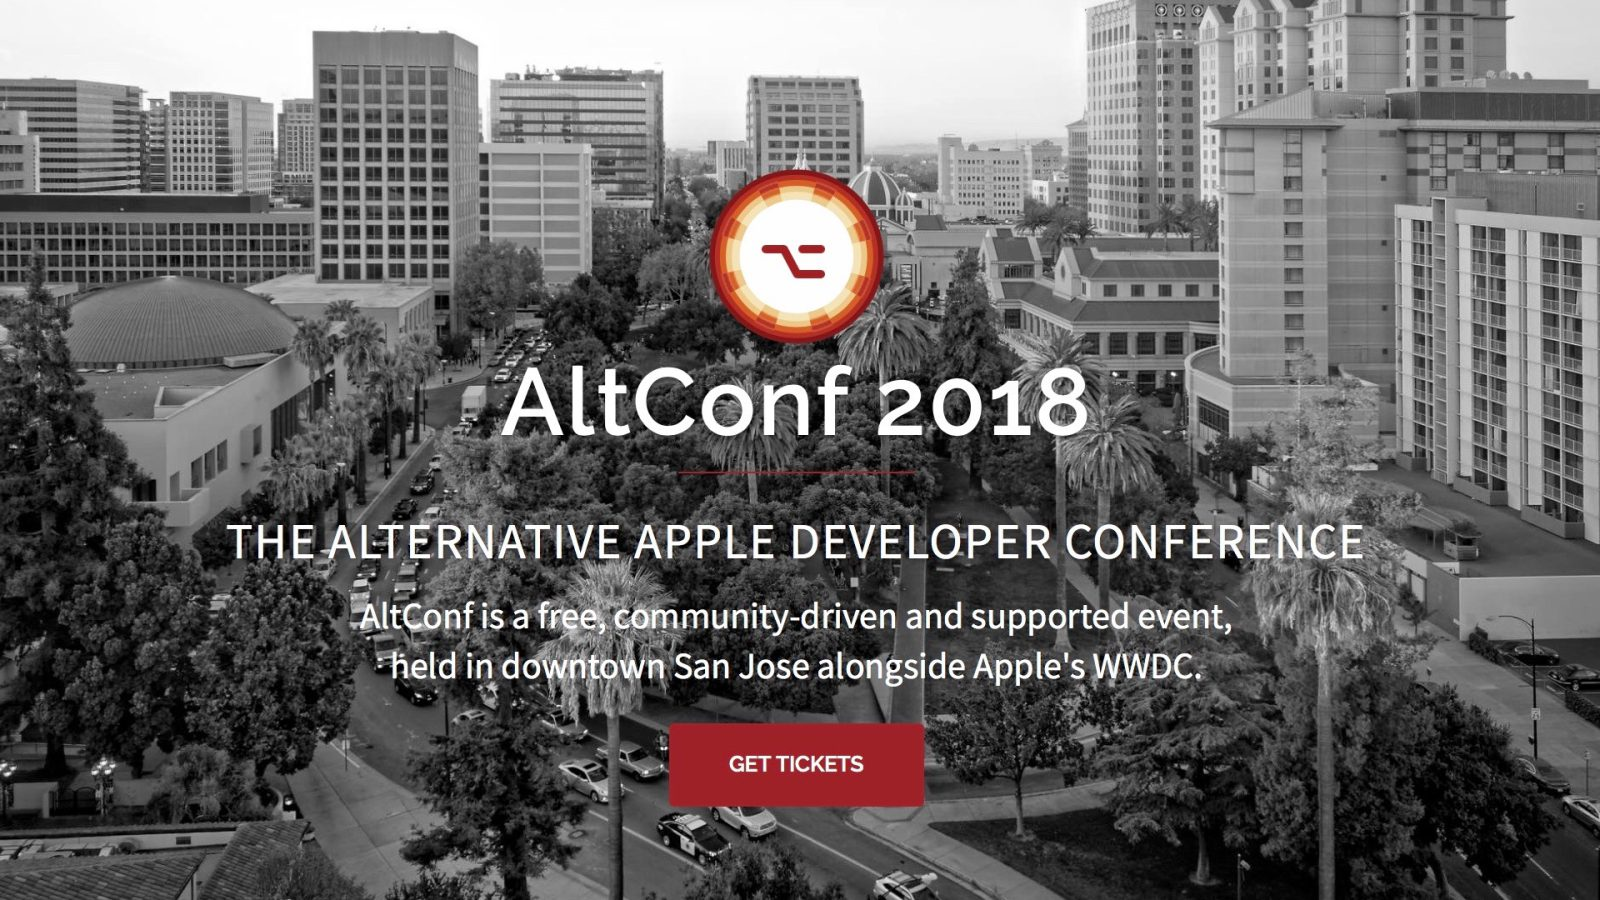 AltConf announces 2018 event details, will once again be 'next door to WWDC' altconf-announces-2018-event-details-will-once-again-be-next-door-to-wwdc